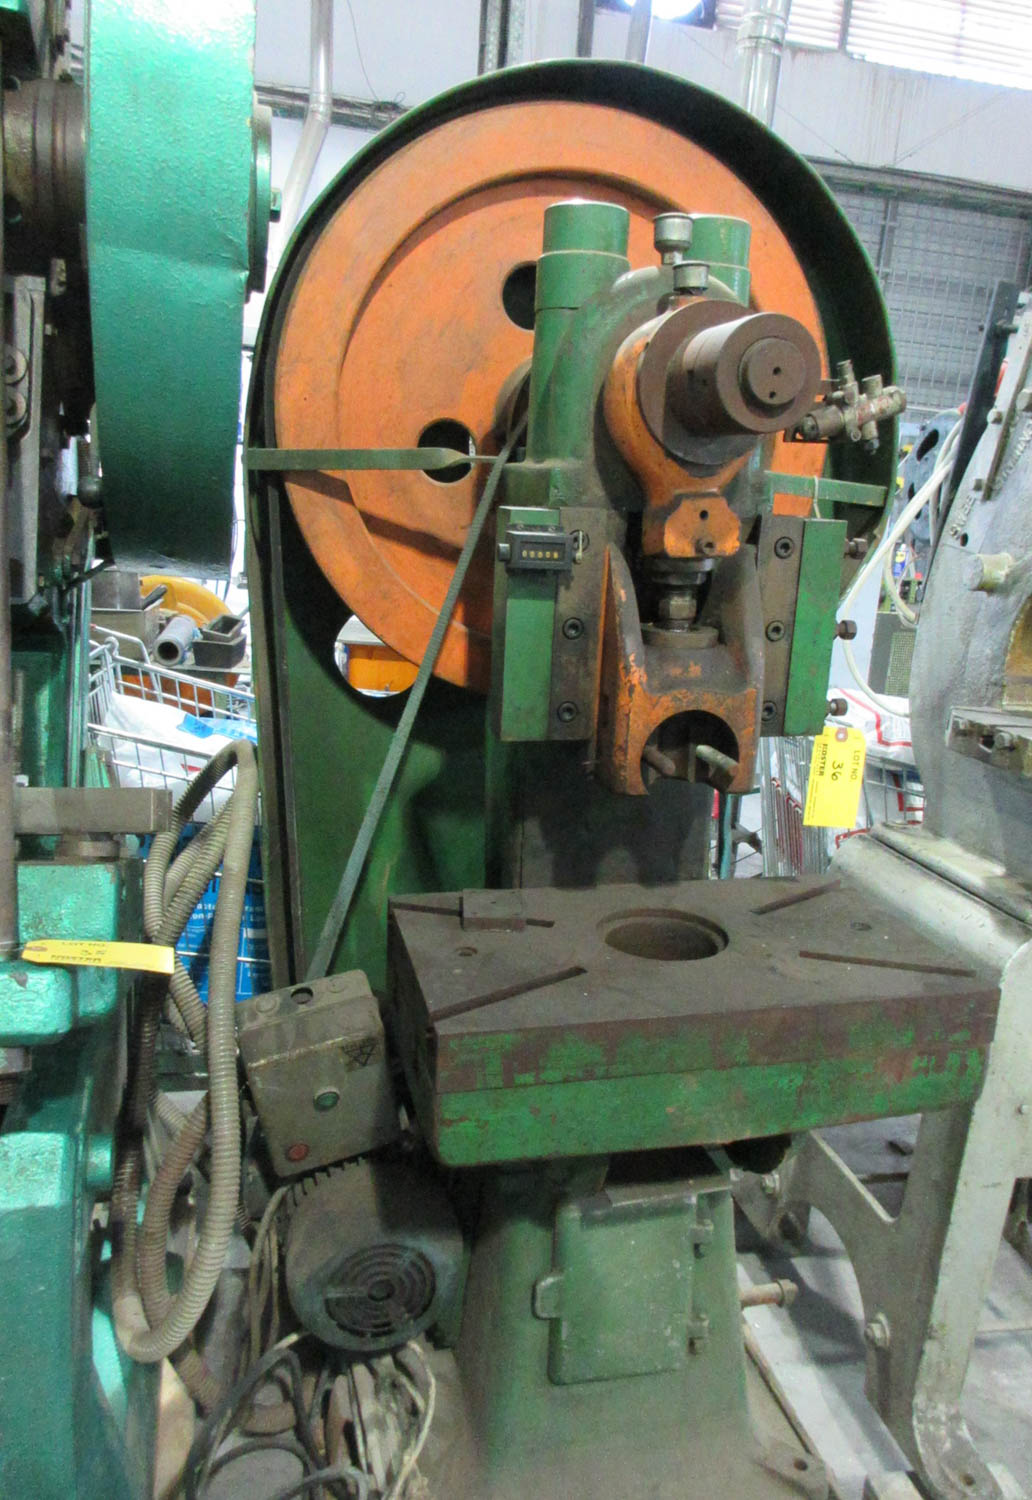 HACCARA FLYWHEEL PRESS; MECHANICAL CLUTCH; BELT DRIVE; 30 TONS; 54X32 T-SLOT TABLE; 16 CM OPEN - Image 2 of 2